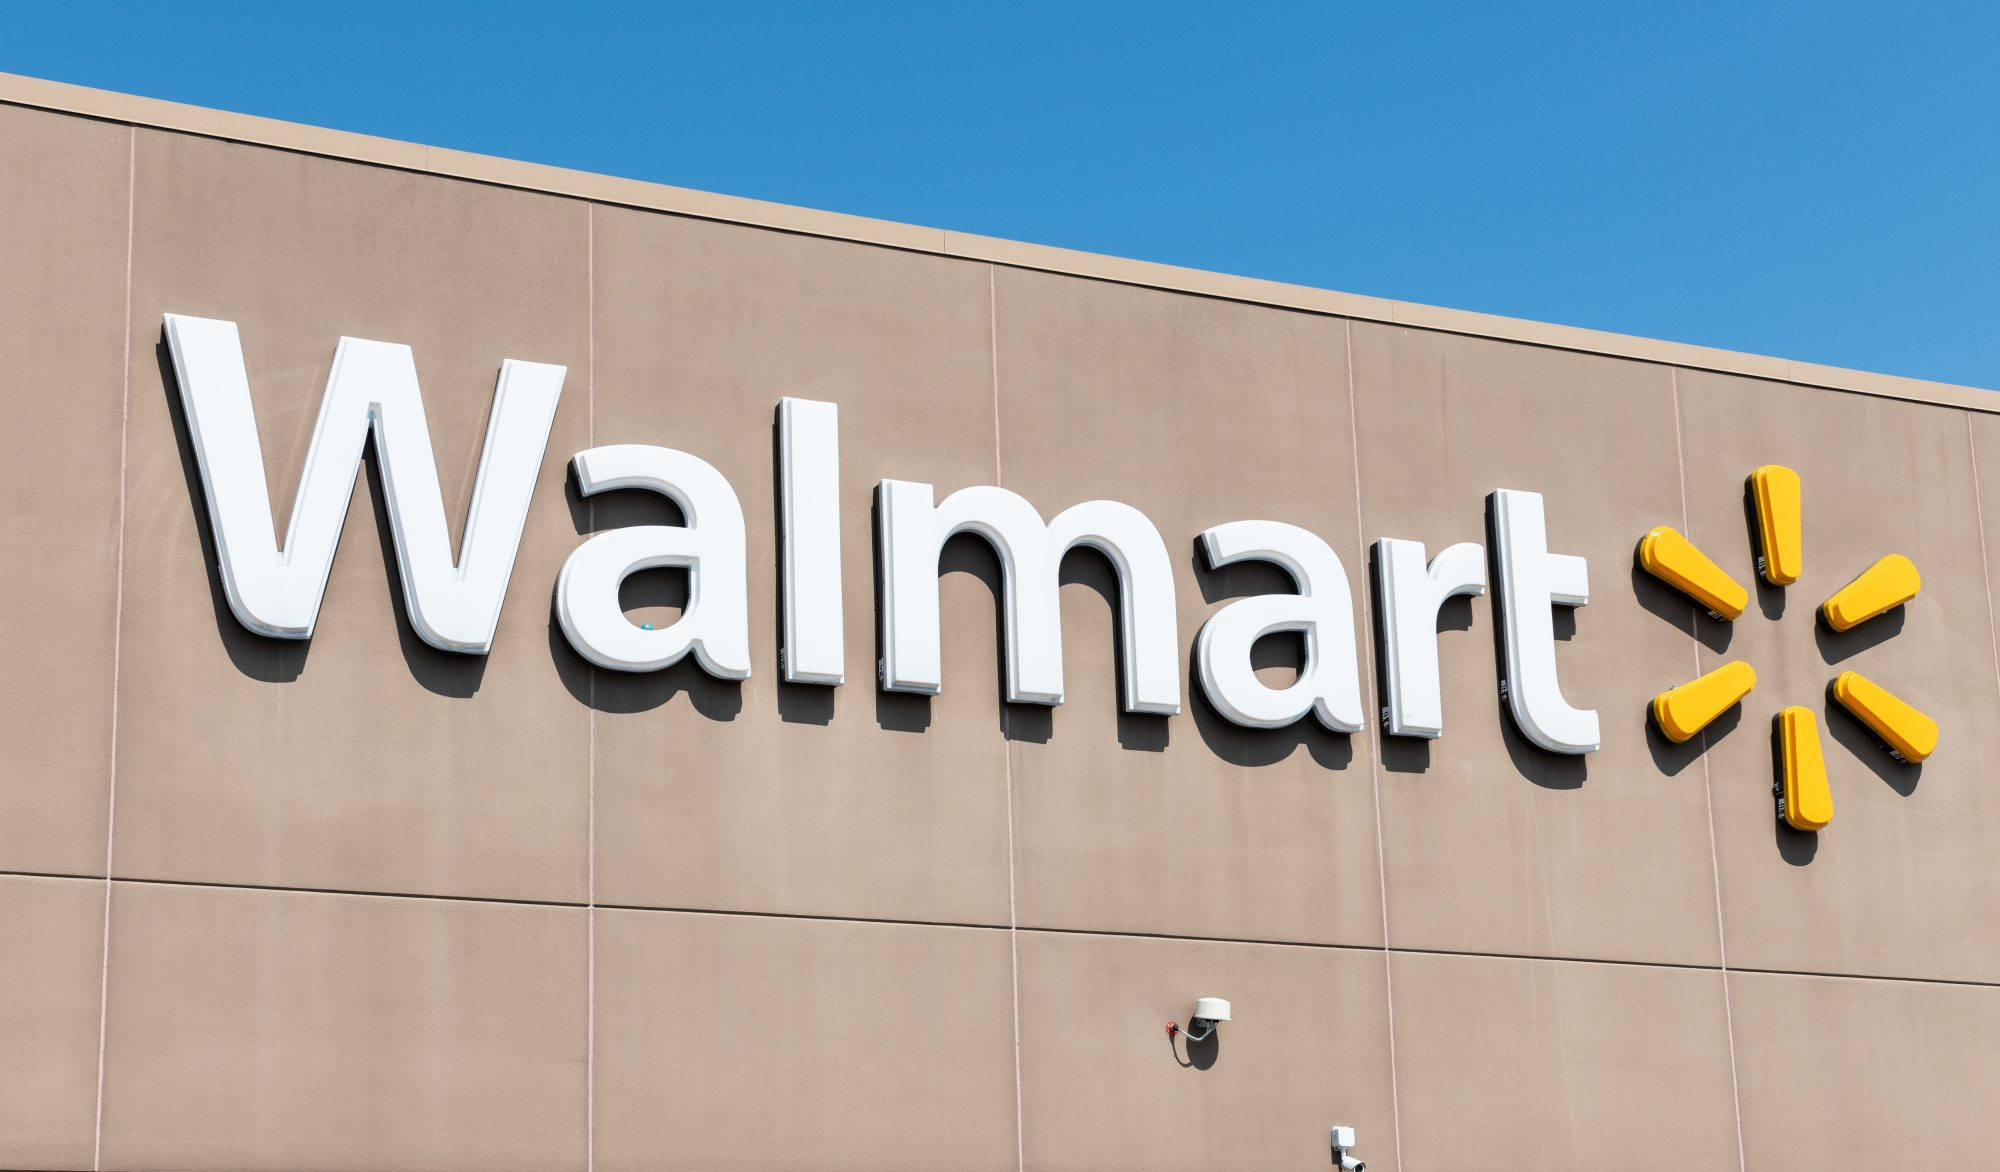 The Best Memorial Day 2019 Sales at Walmart on Furniture, TVs, Kitchen Appliances, Mattresses, and More